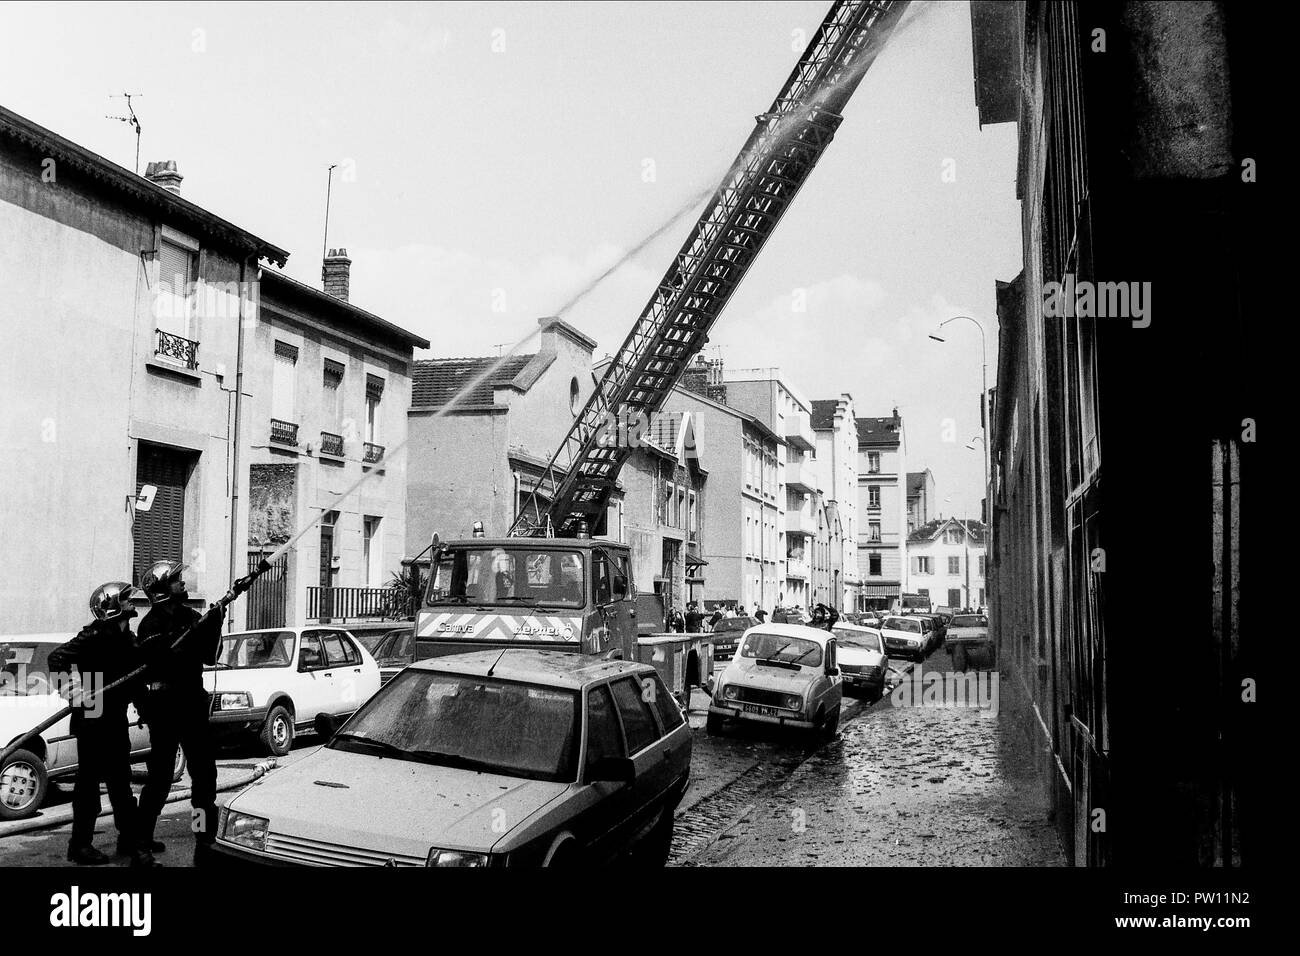 Archives 90ies: Firefighters at work in a burning factory